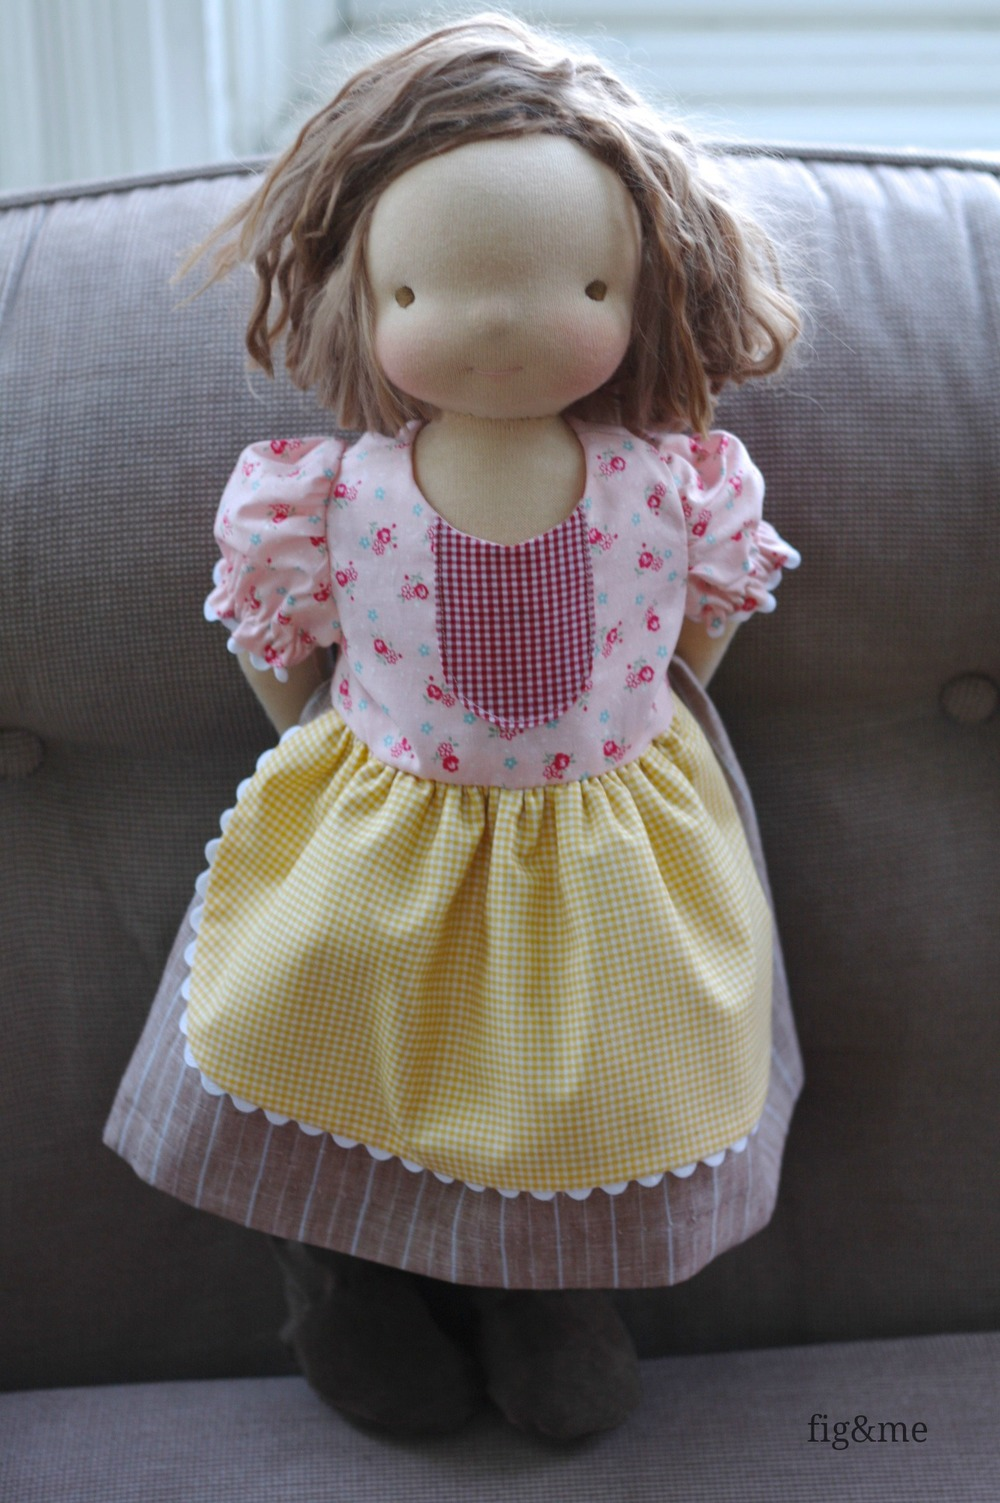 Lilybug in her patchy dress, by Fig &  me